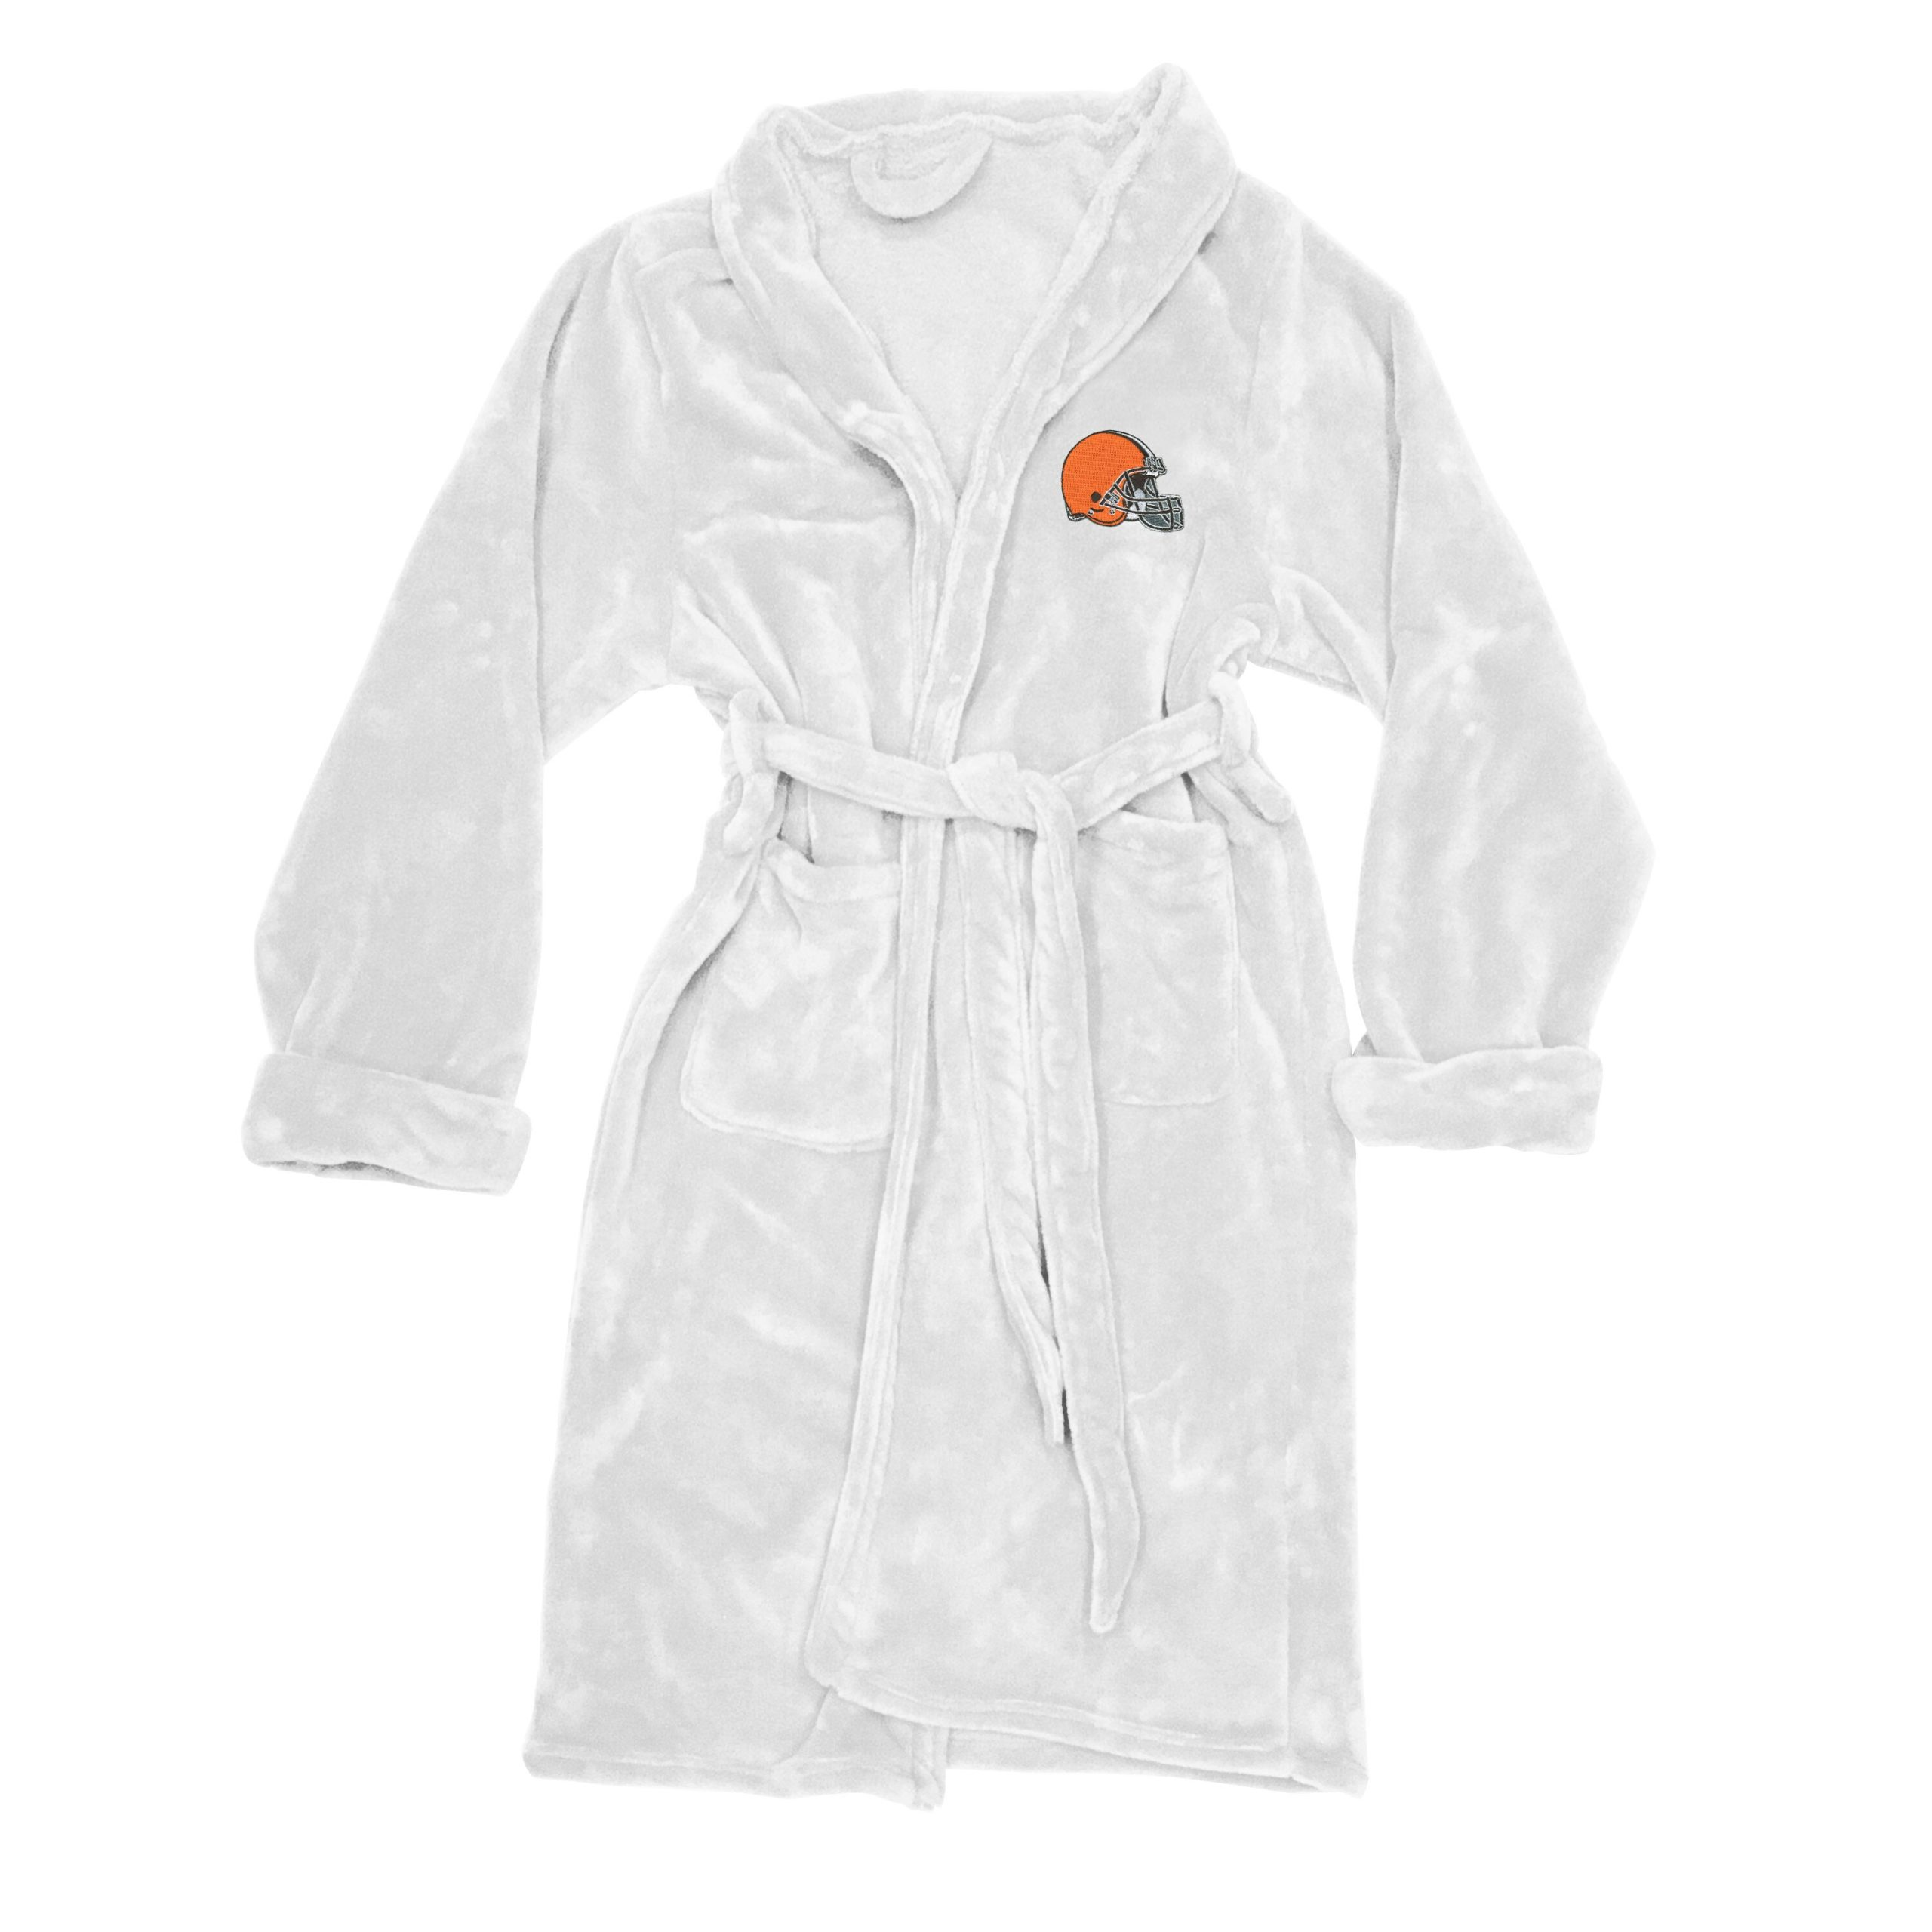 Cleveland Browns The Northwest Company Silk Touch Robe - White